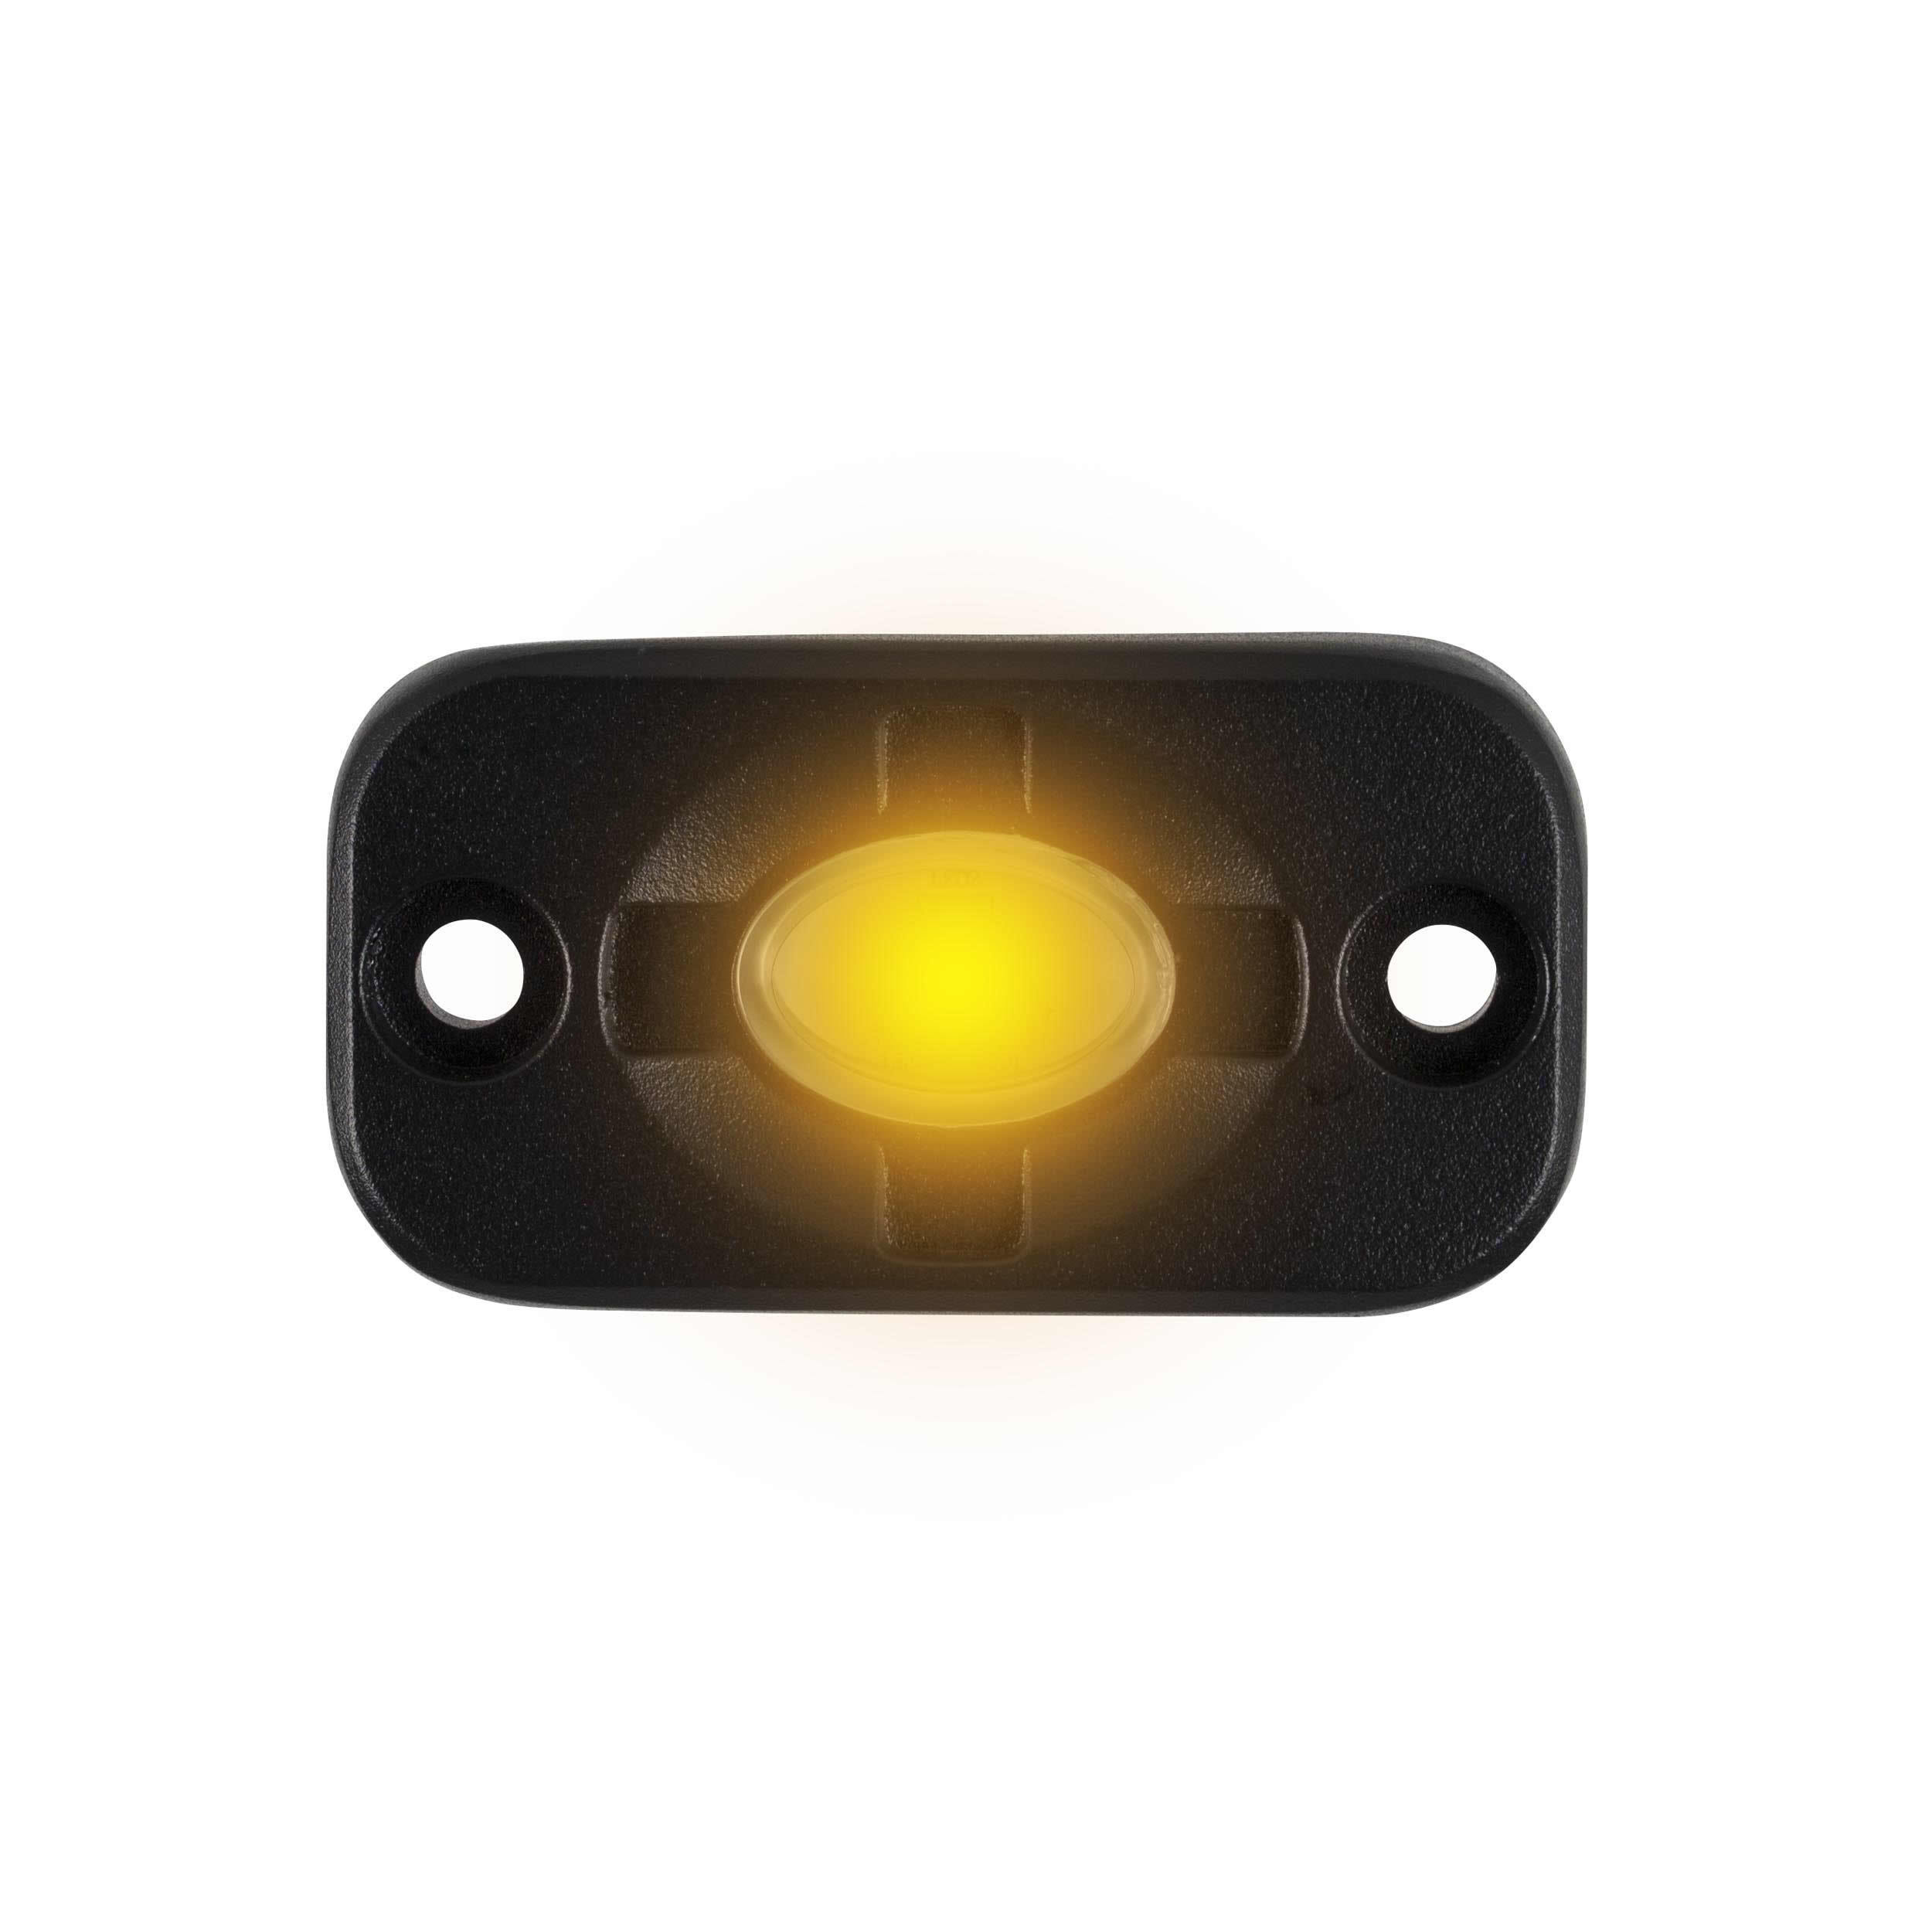 Amber Auxiliary Lighting Pod - 1.5x3 Inch, 3 LED